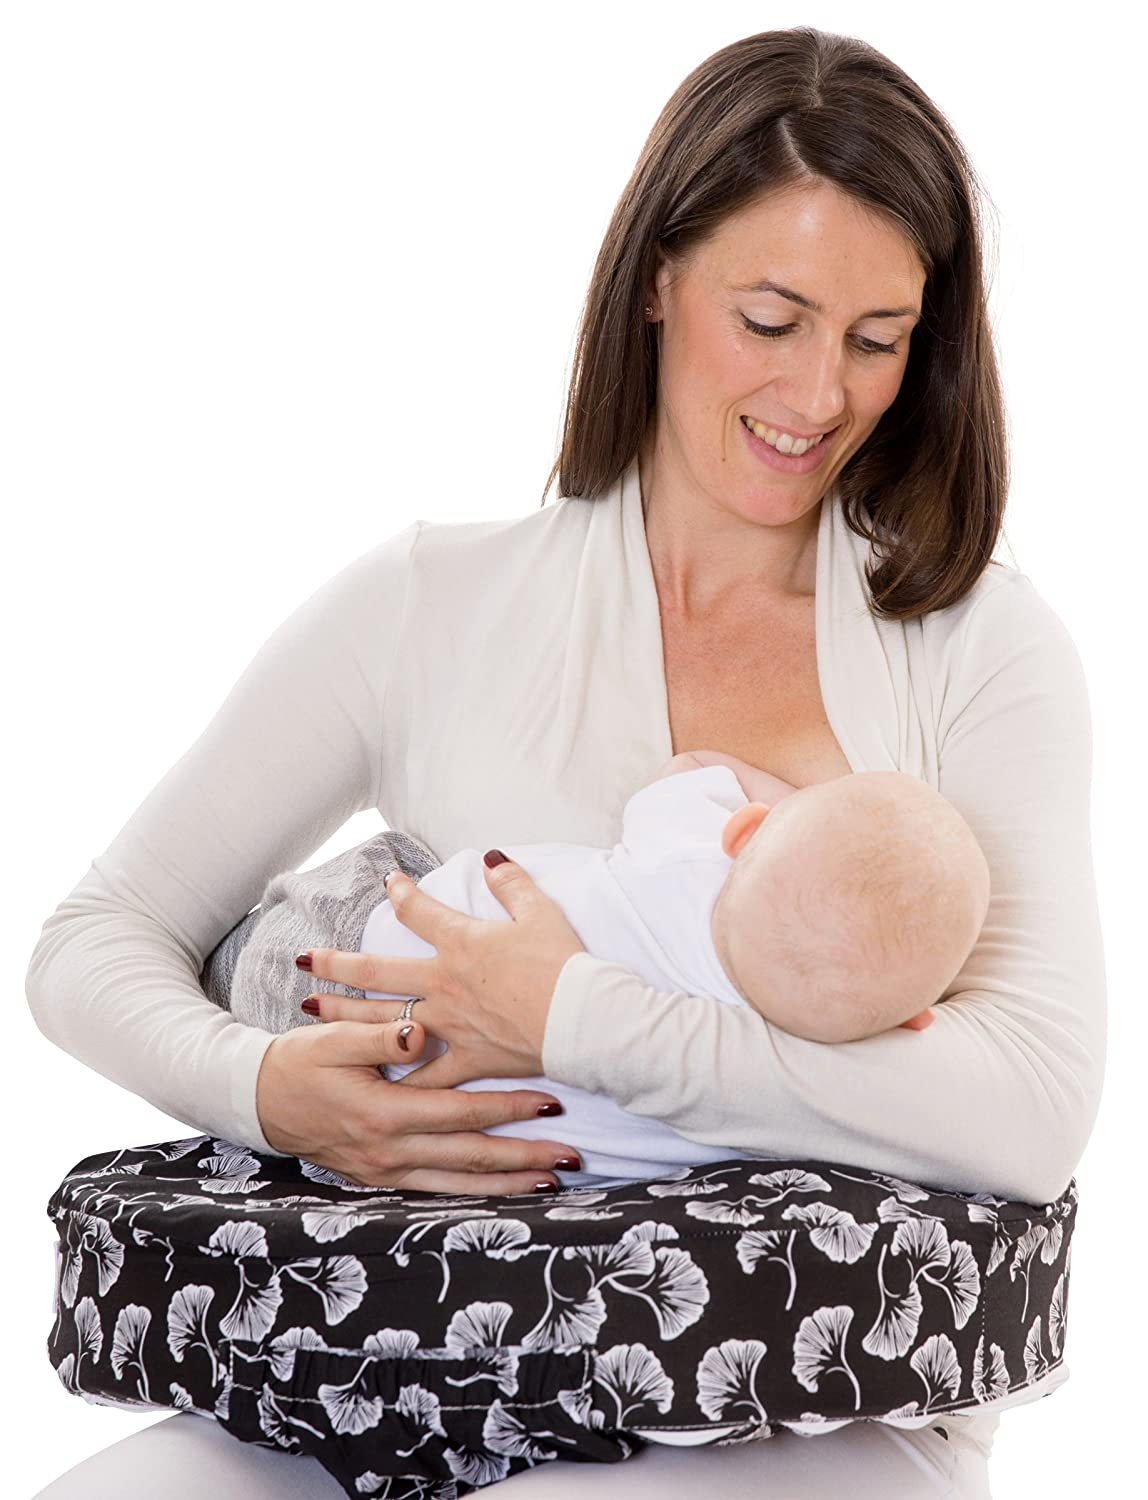 My Brest Friend 100/% Cotton Nursing Pillow Original Slipcover Flowing Fans Black /& White Machine Washable Breastfeeding Cushion Cover pillow not included